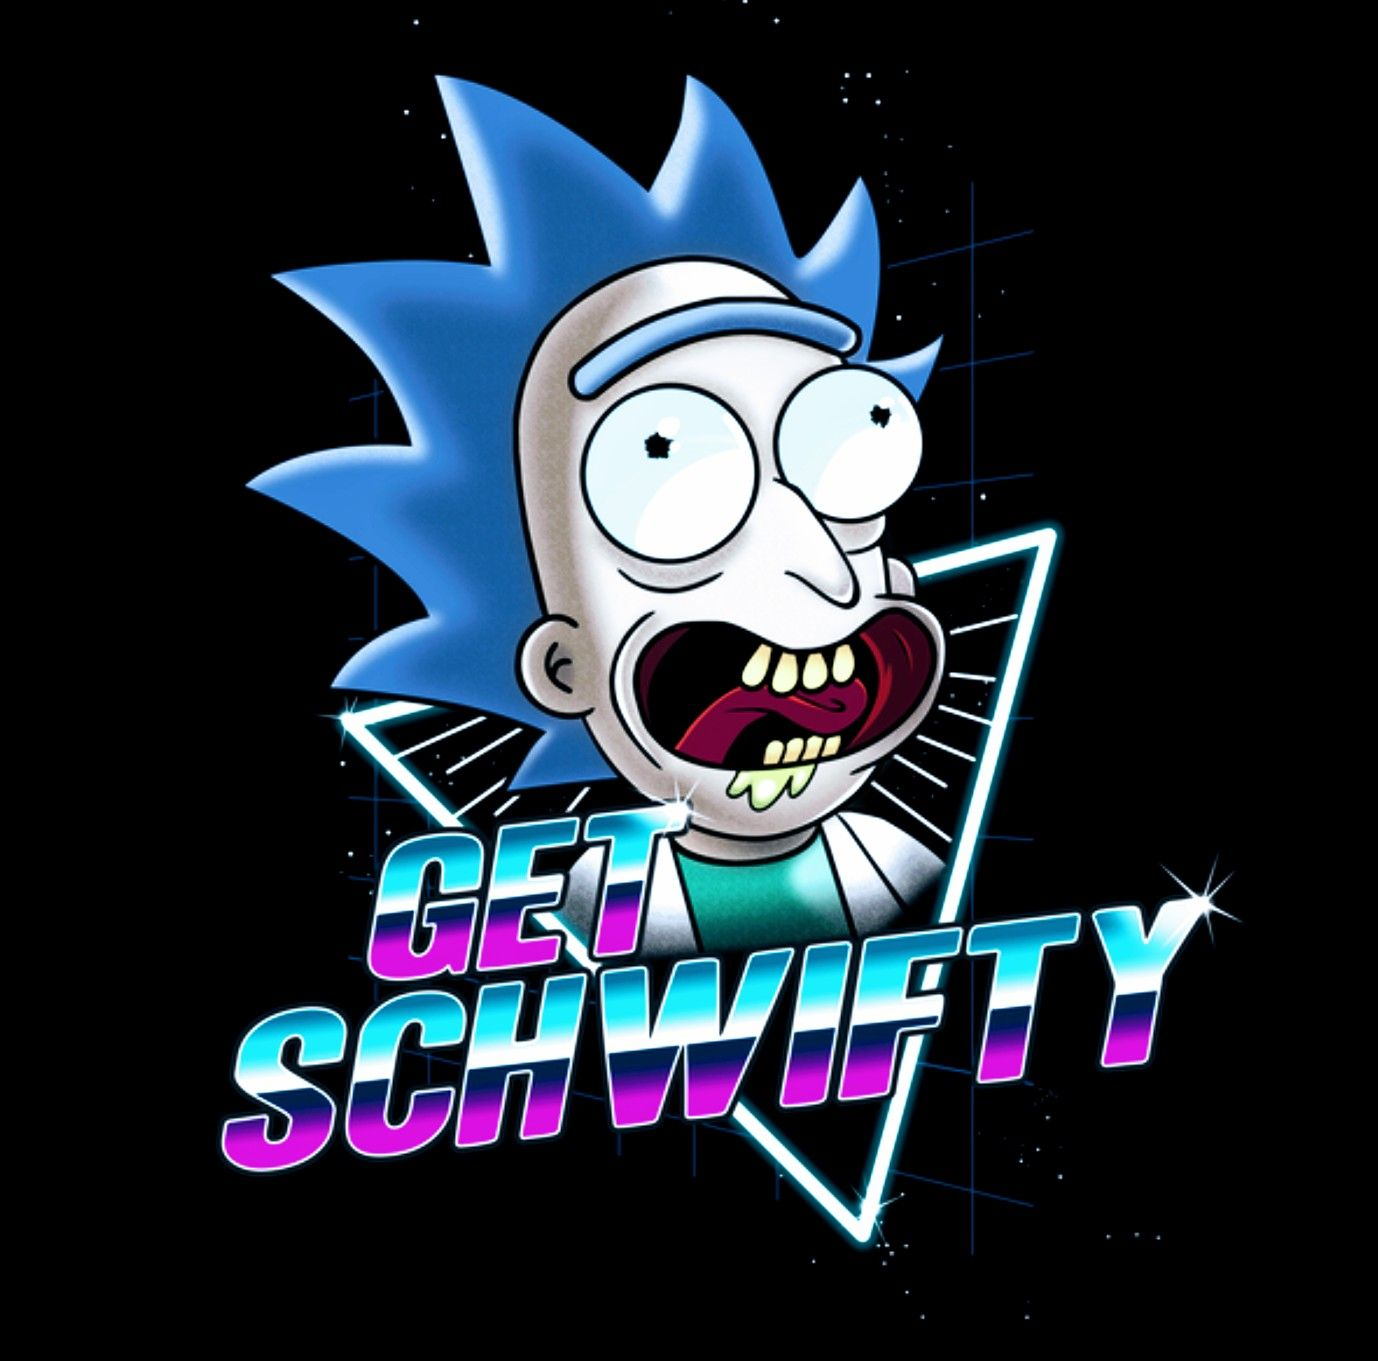 Rick And Morty X Get Schwifty Rick And Morty Poster Rick And